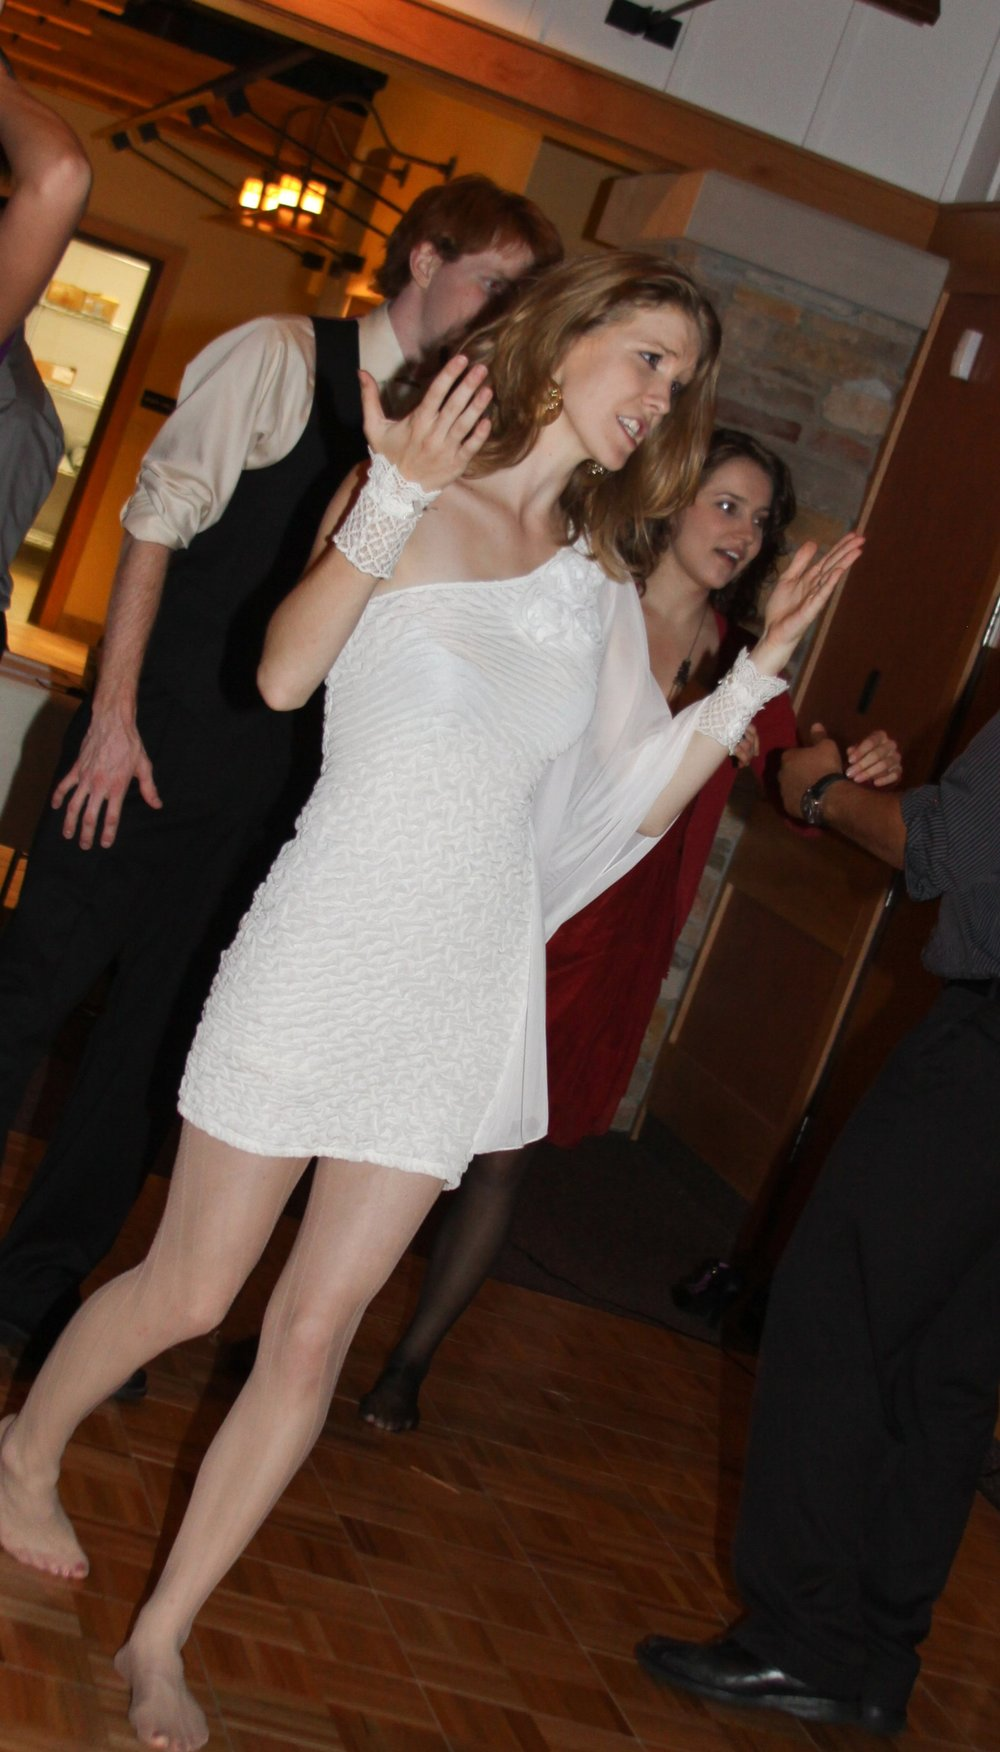 """Classy much? Here's my """"reception dress"""" that I bought at Deb's for $15. (remember, I was still a fast fashion junkie at this point) Also wearing lace wristlets from Claire's. Yup. Great comfort for dancing. But what to do with it now?"""